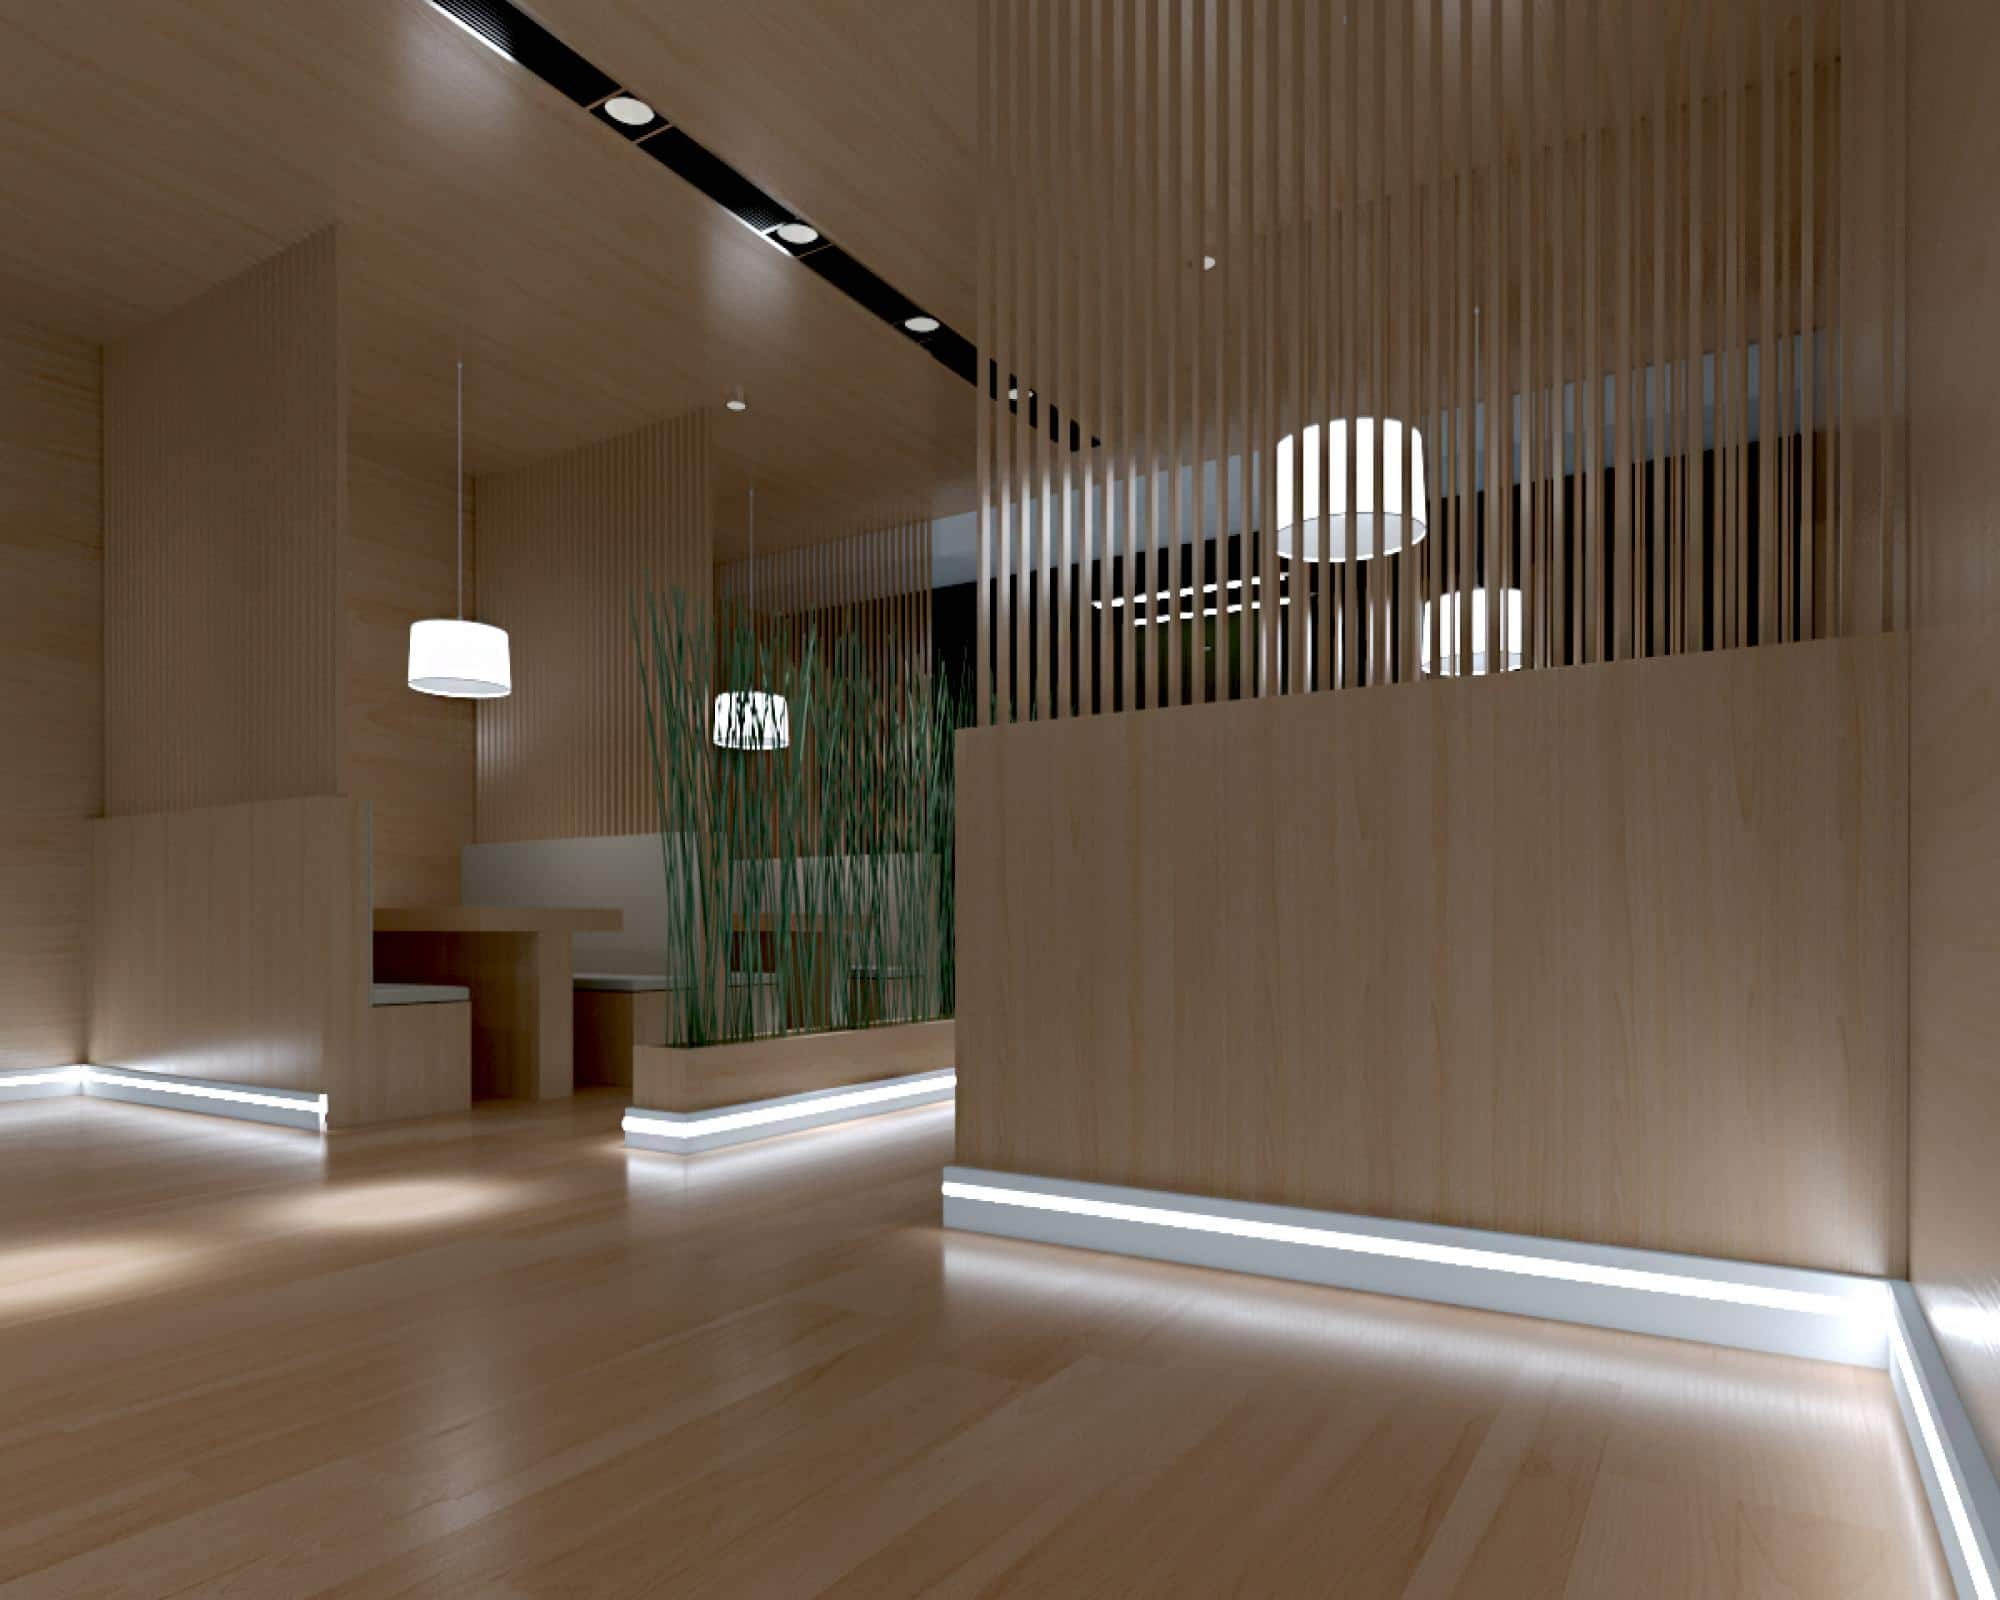 Ways for Using LED Strip Tapes. Down part wall lighting for the interior partition